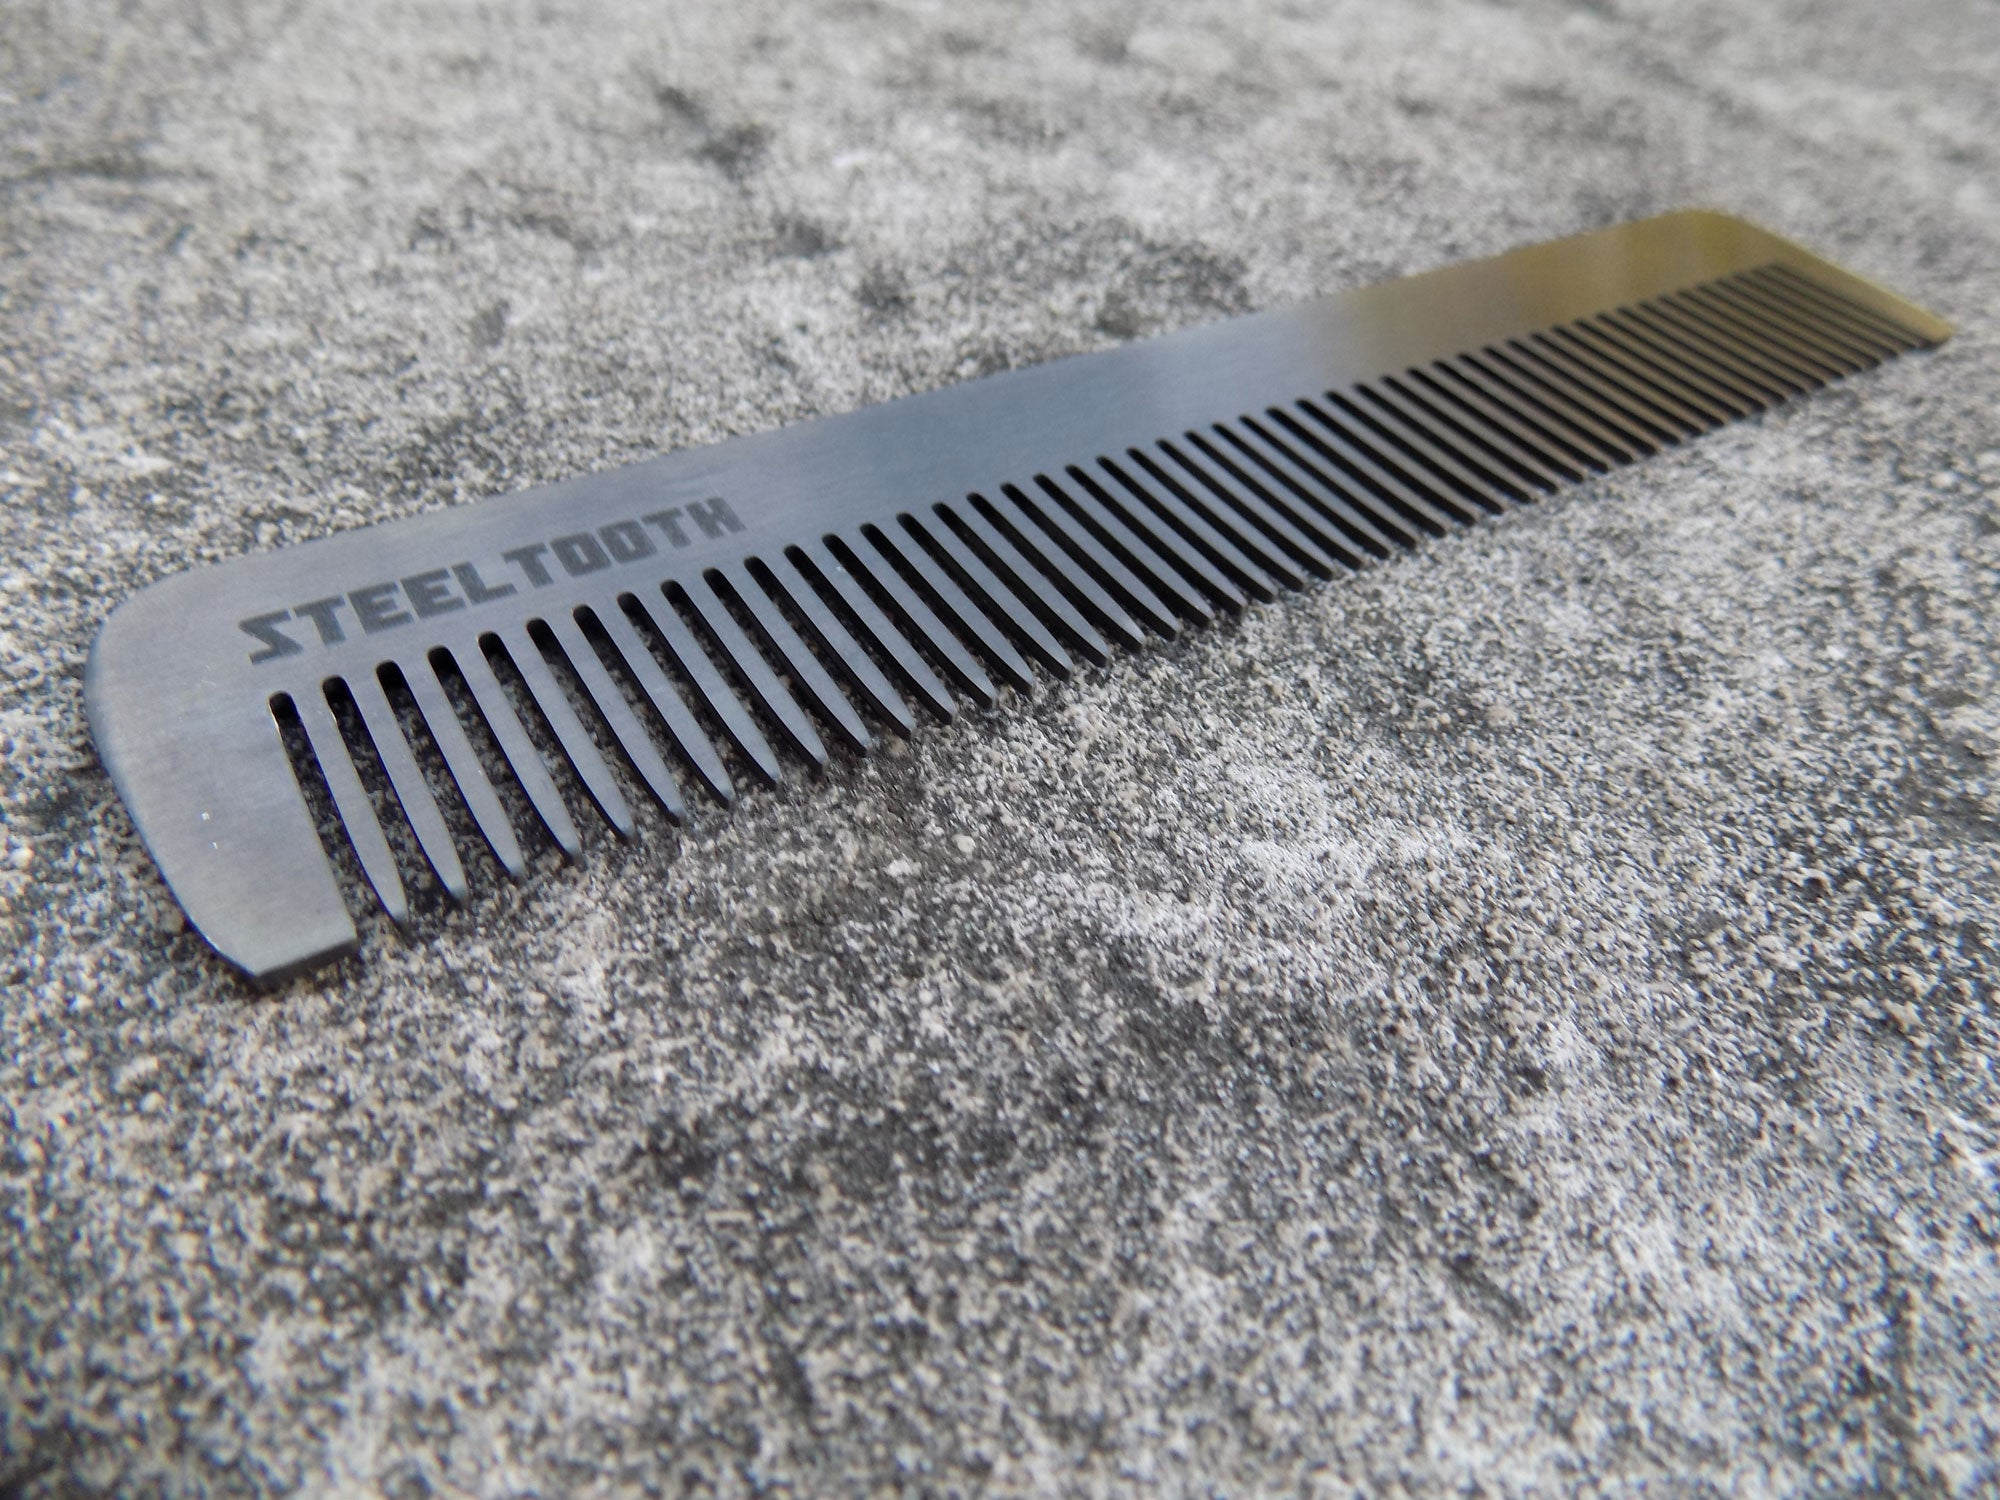 Stainless Steel black comb that works on thick and longer hair.